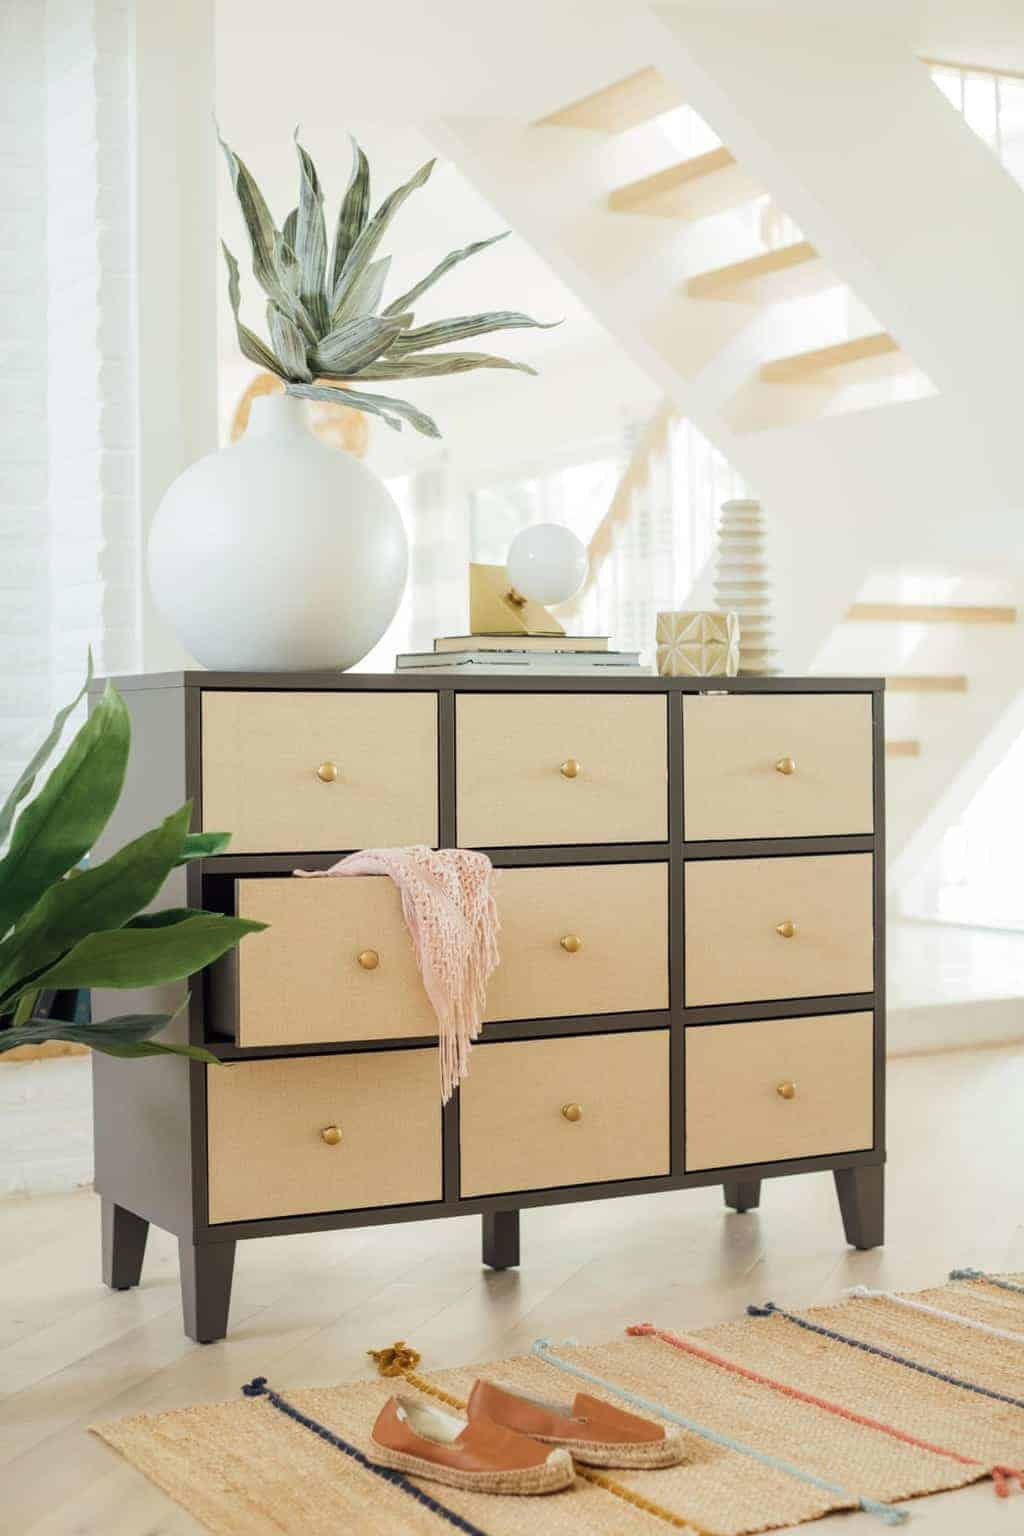 Diy Ikea Drawers How To Make Easy Rattan Drawers Sugar Cloth